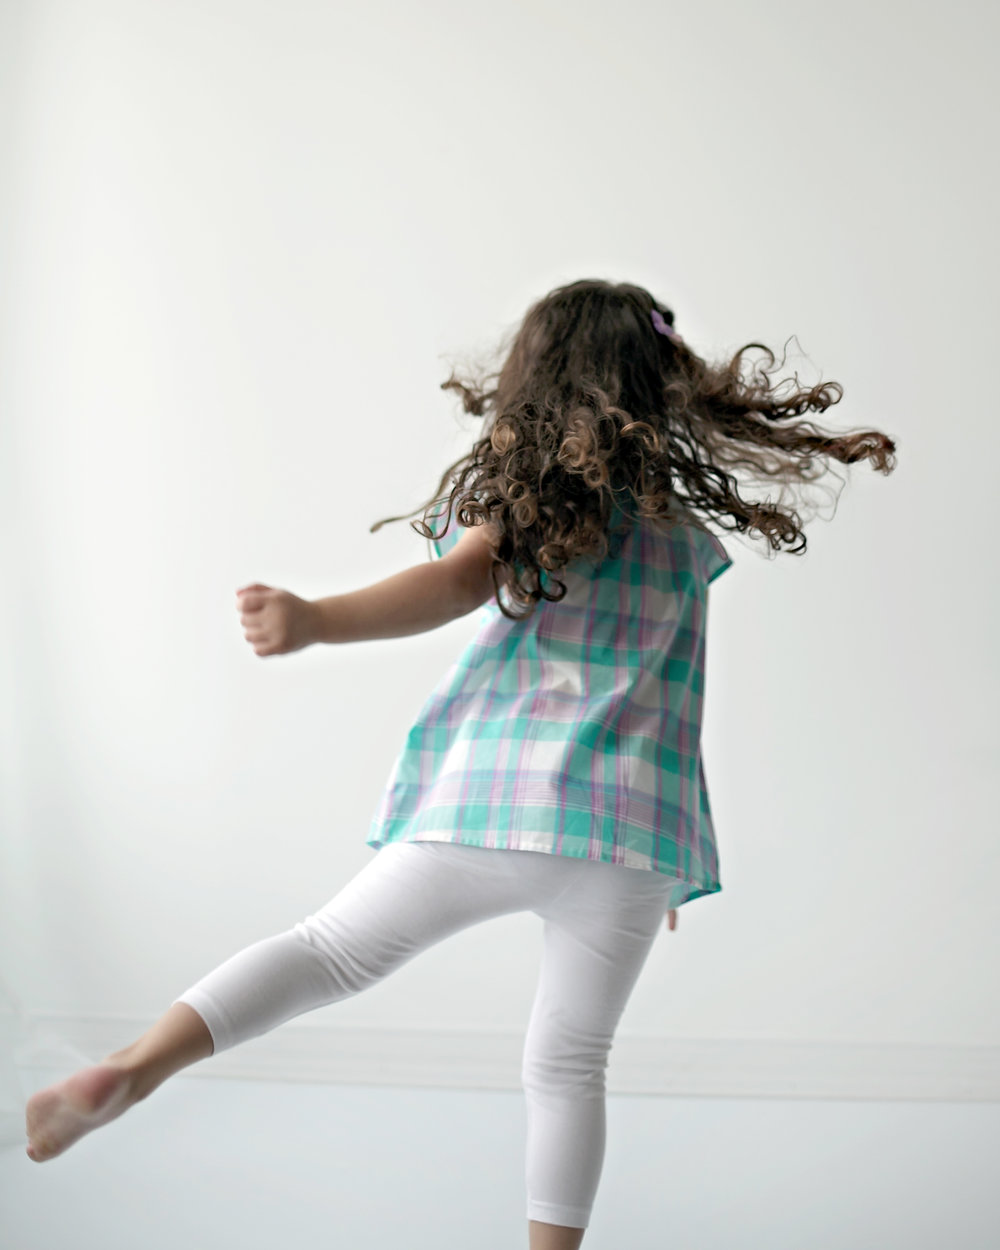 Happiness_Oshawa_Child_Model_Petra_King_Photography